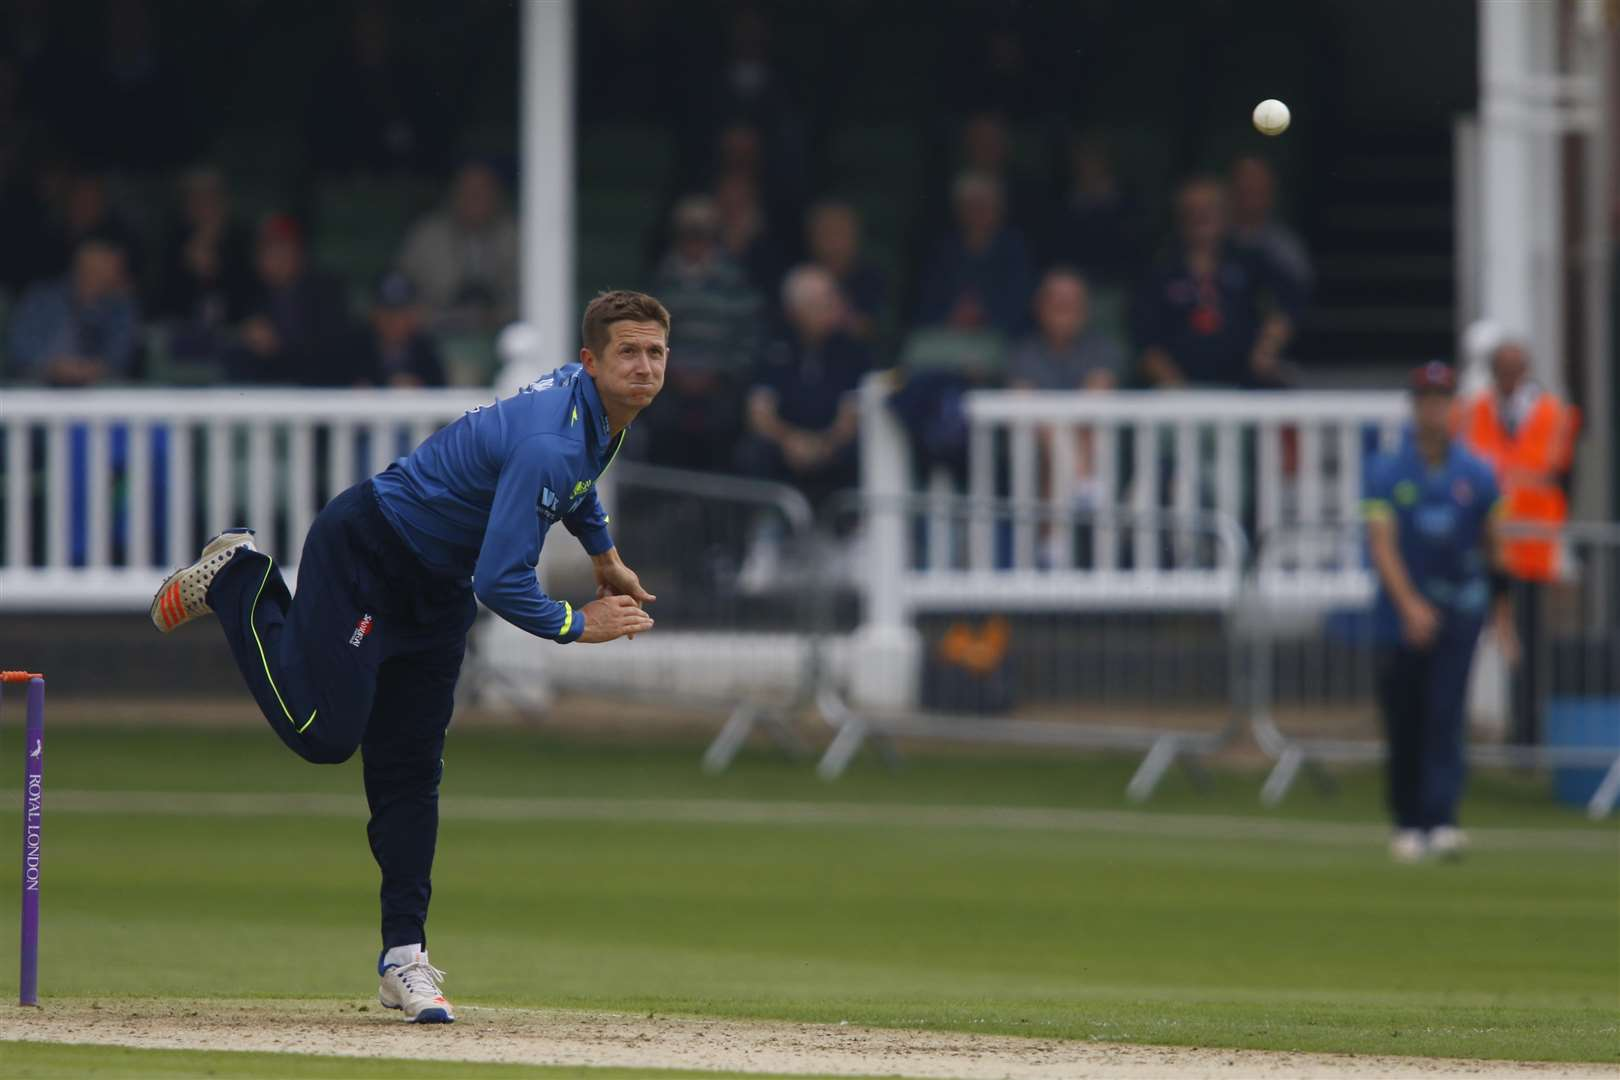 Joe Denly bowling. Picture: Andy Jones